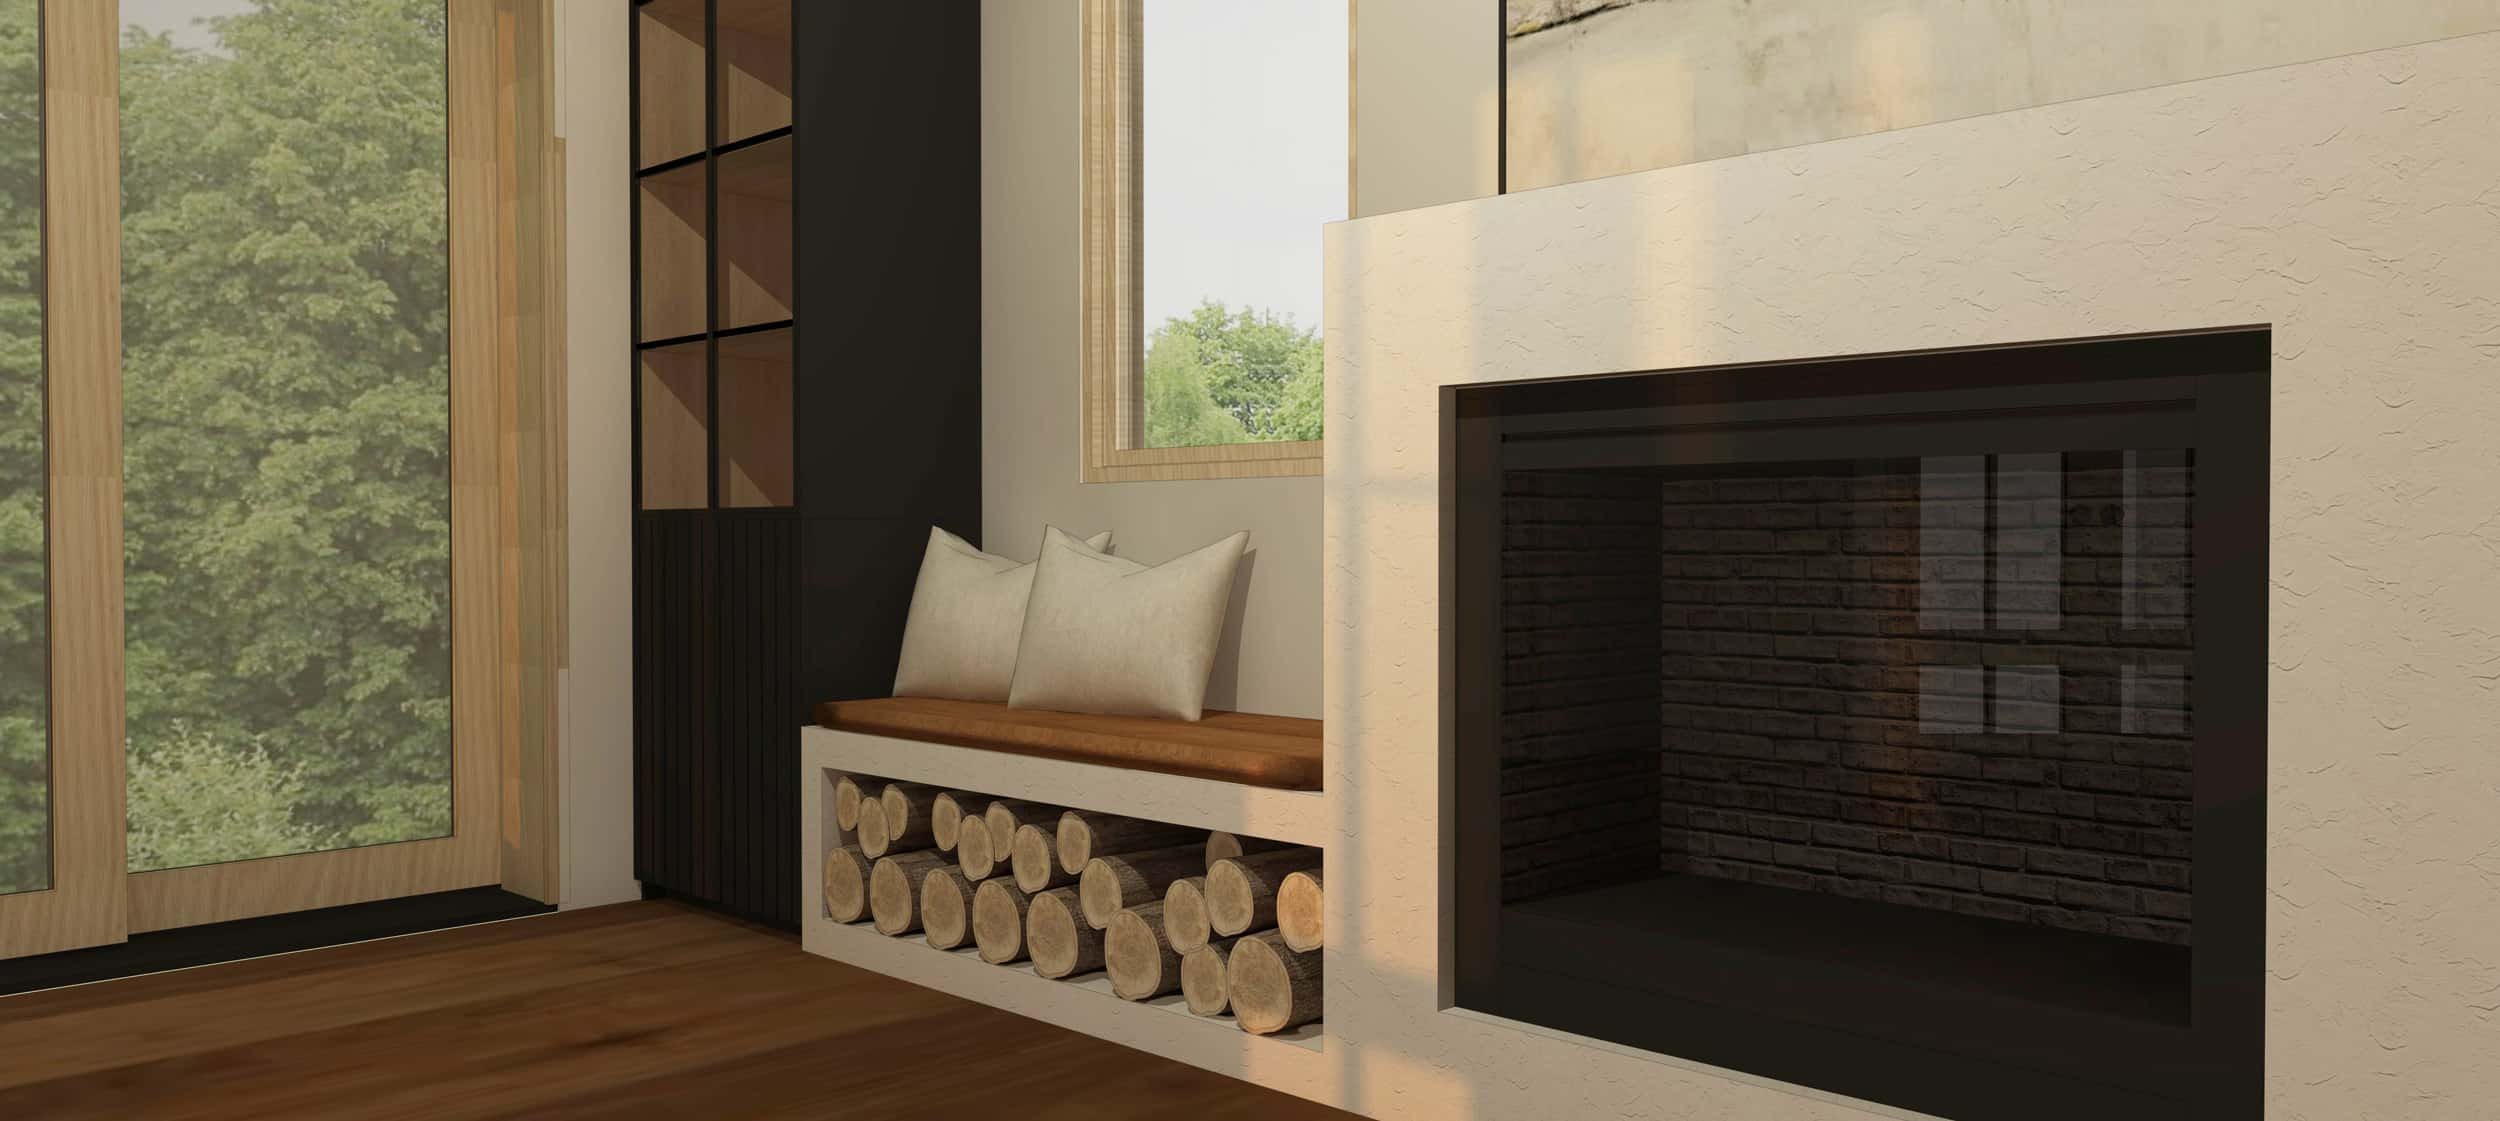 Emily Henderson Mountain Fixer Upper Family Room Fireplace Render 05 Shadow